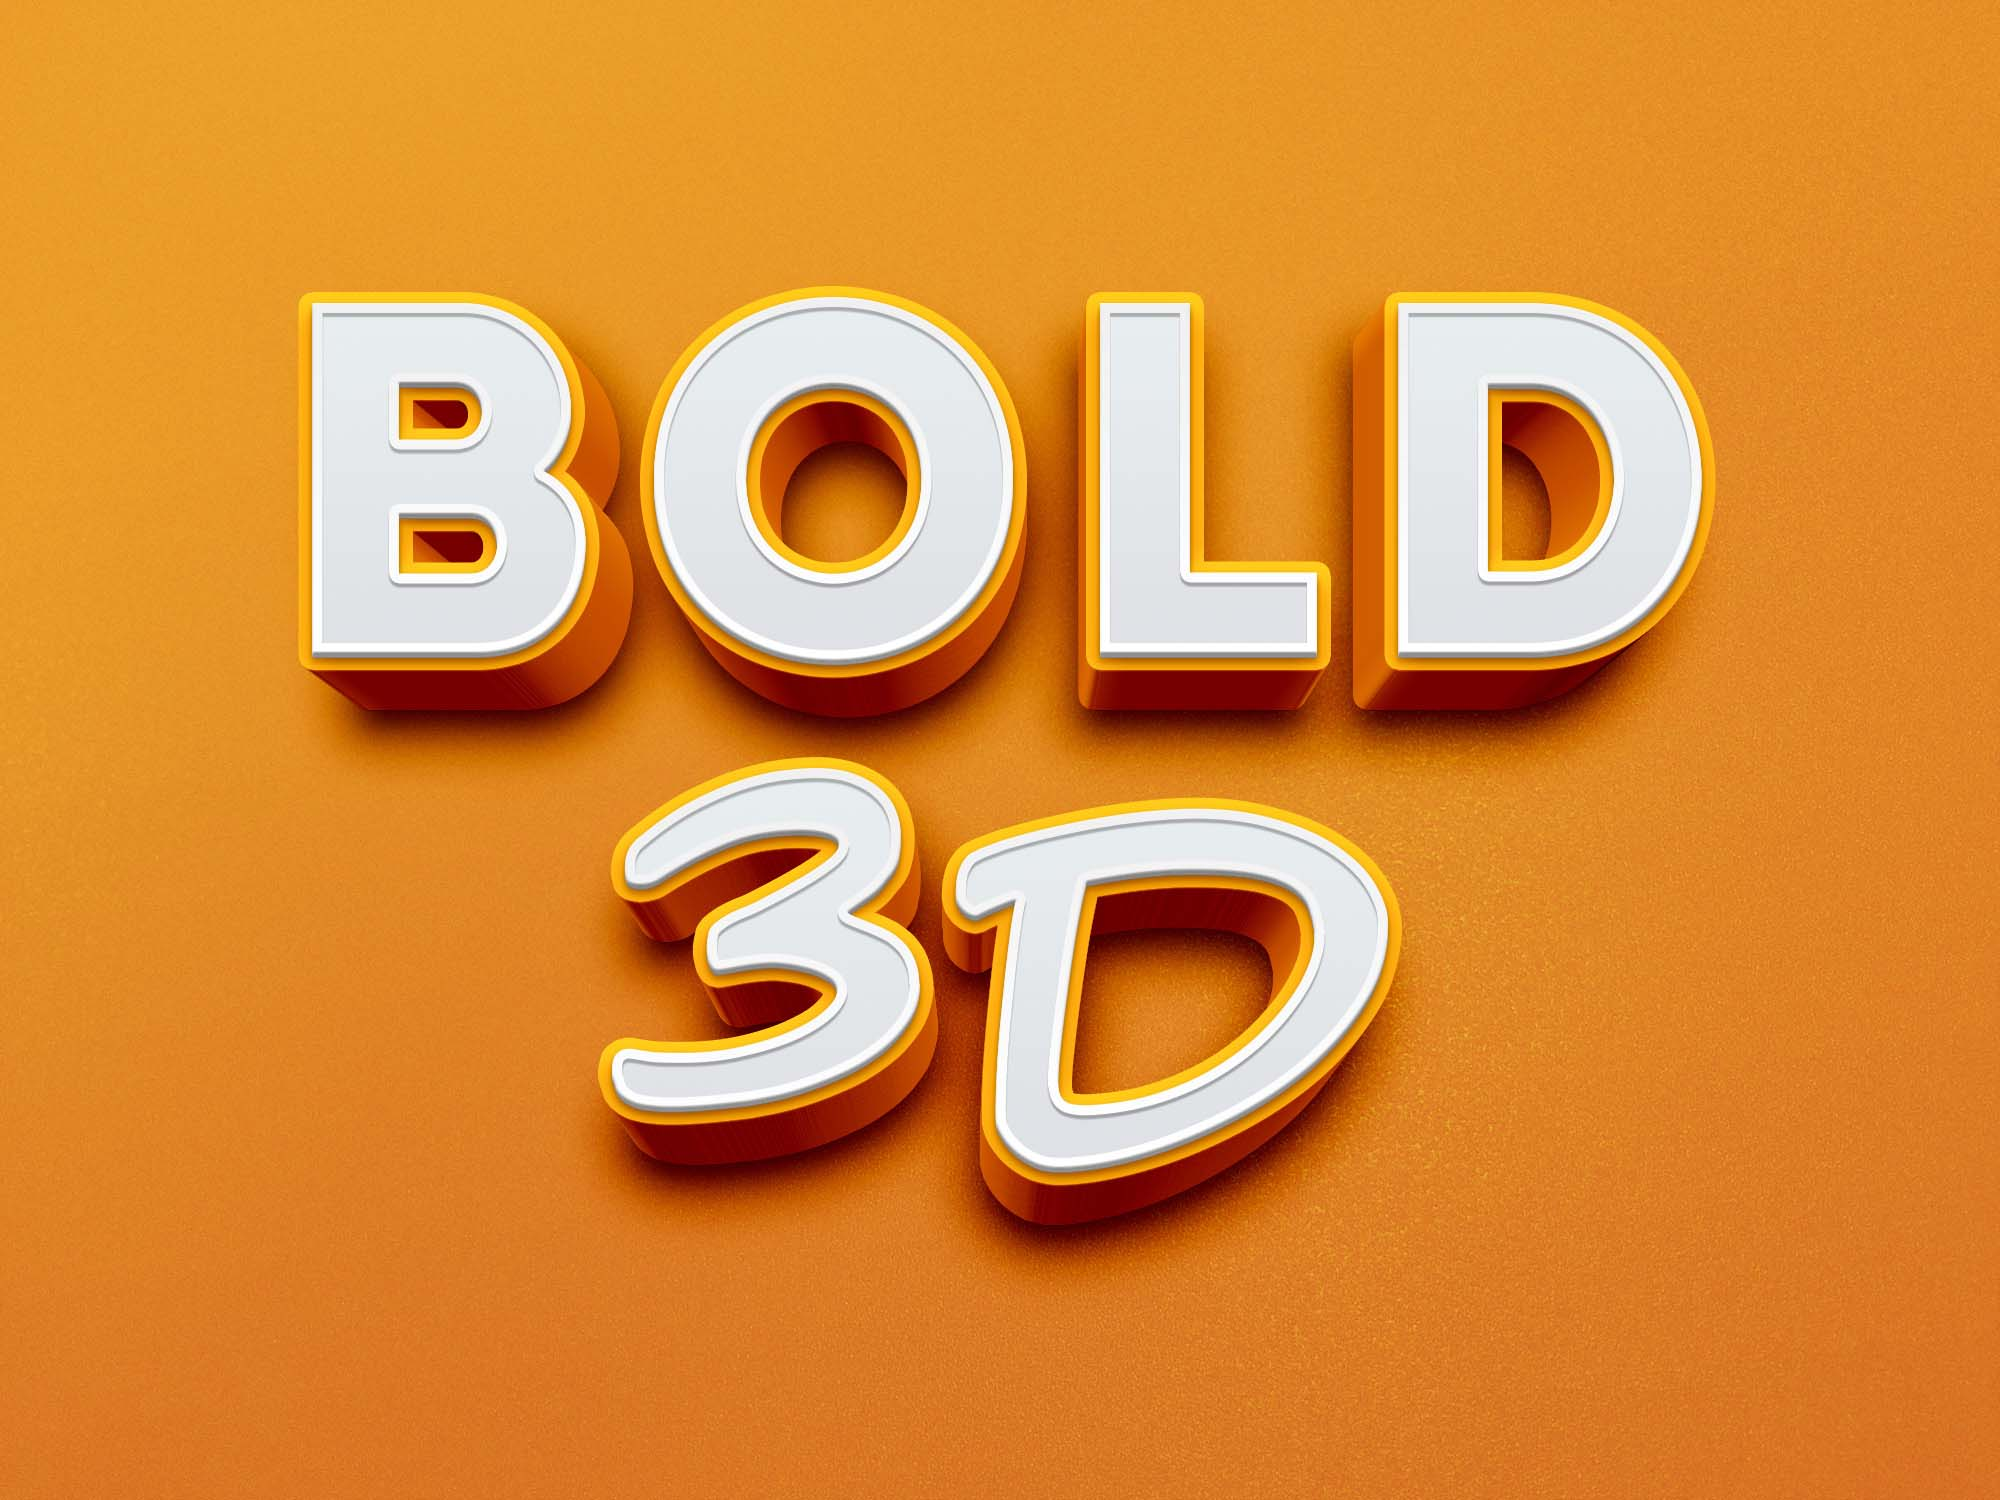 Sign up for a pro account with zofile.com for fast download. Free Bold 3d Text Effect Psd Best Free Photoshop Files